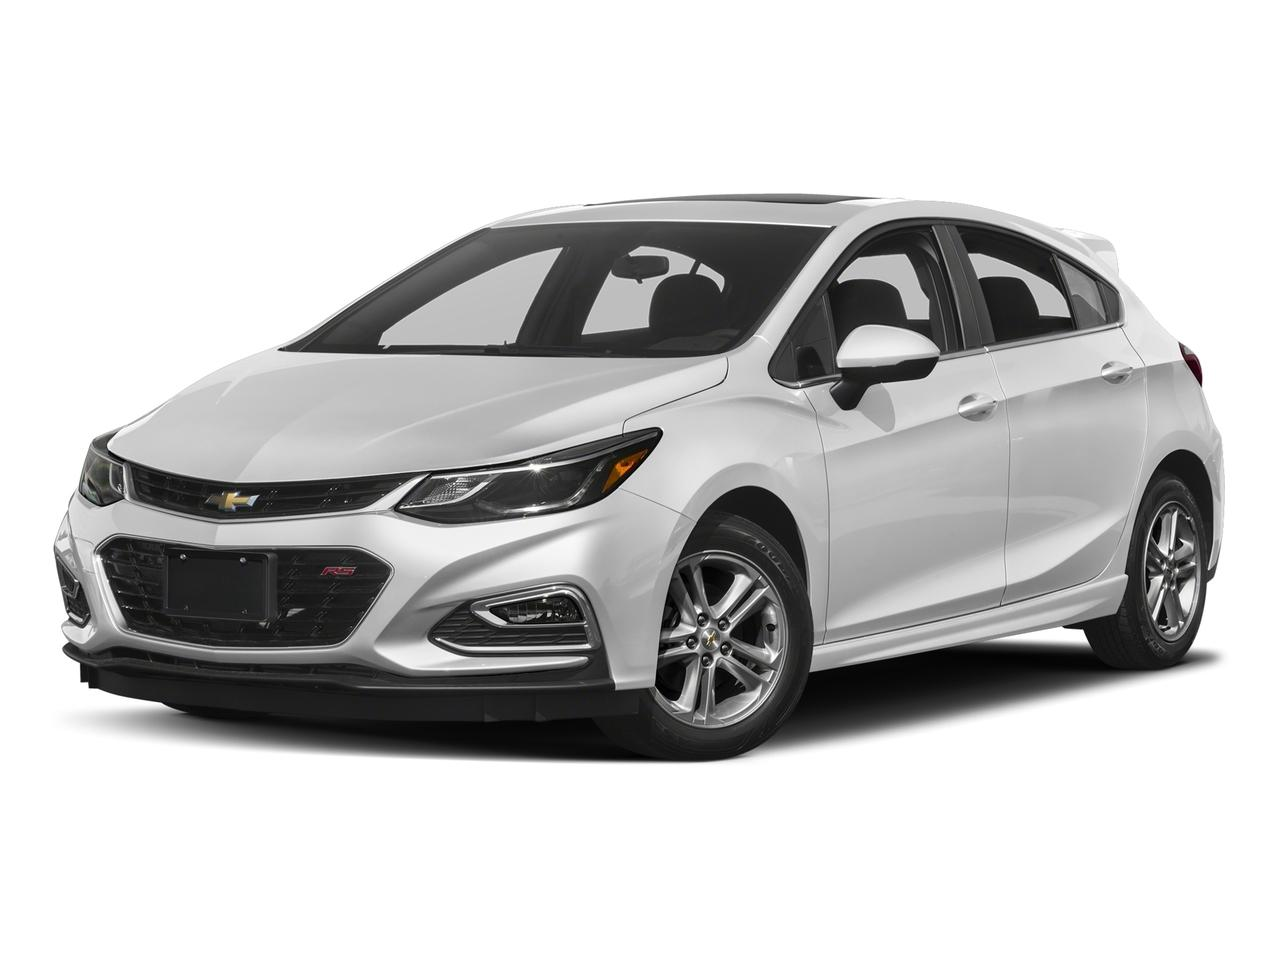 2017 Chevrolet Cruze Vehicle Photo in Peoria, IL 61615